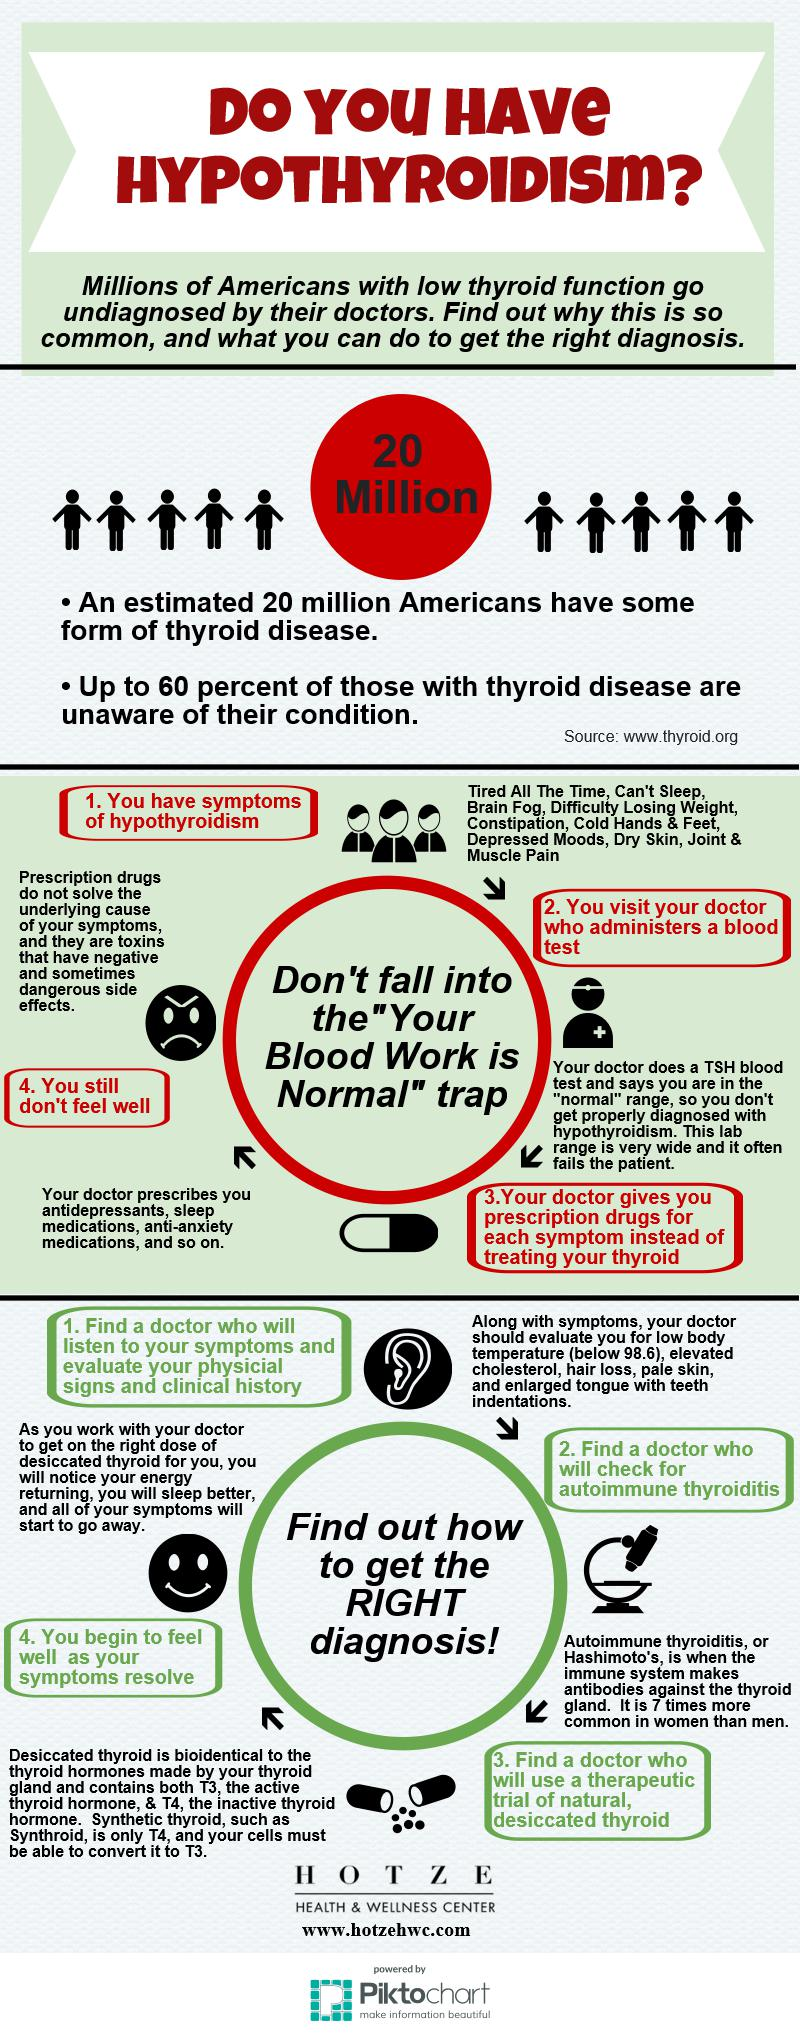 Symptoms of Hypothyroidism: How to get the RIGHT diagnosis